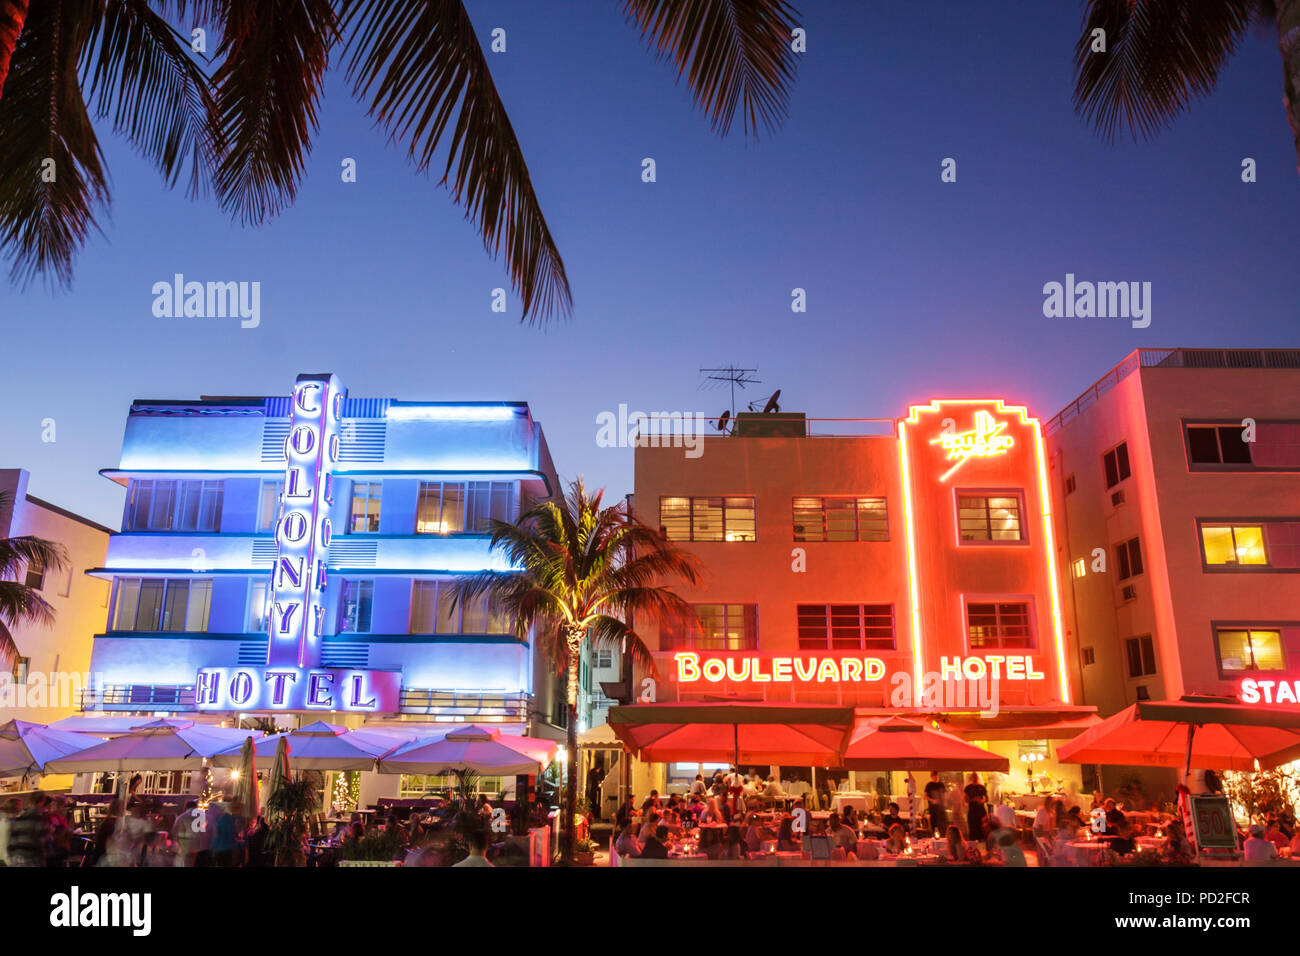 Miami Beach Florida Art Deco District Ocean Drive New Years Eve Night Nightlife Alfresco Dining Colony Hotel Boulevard Hotel